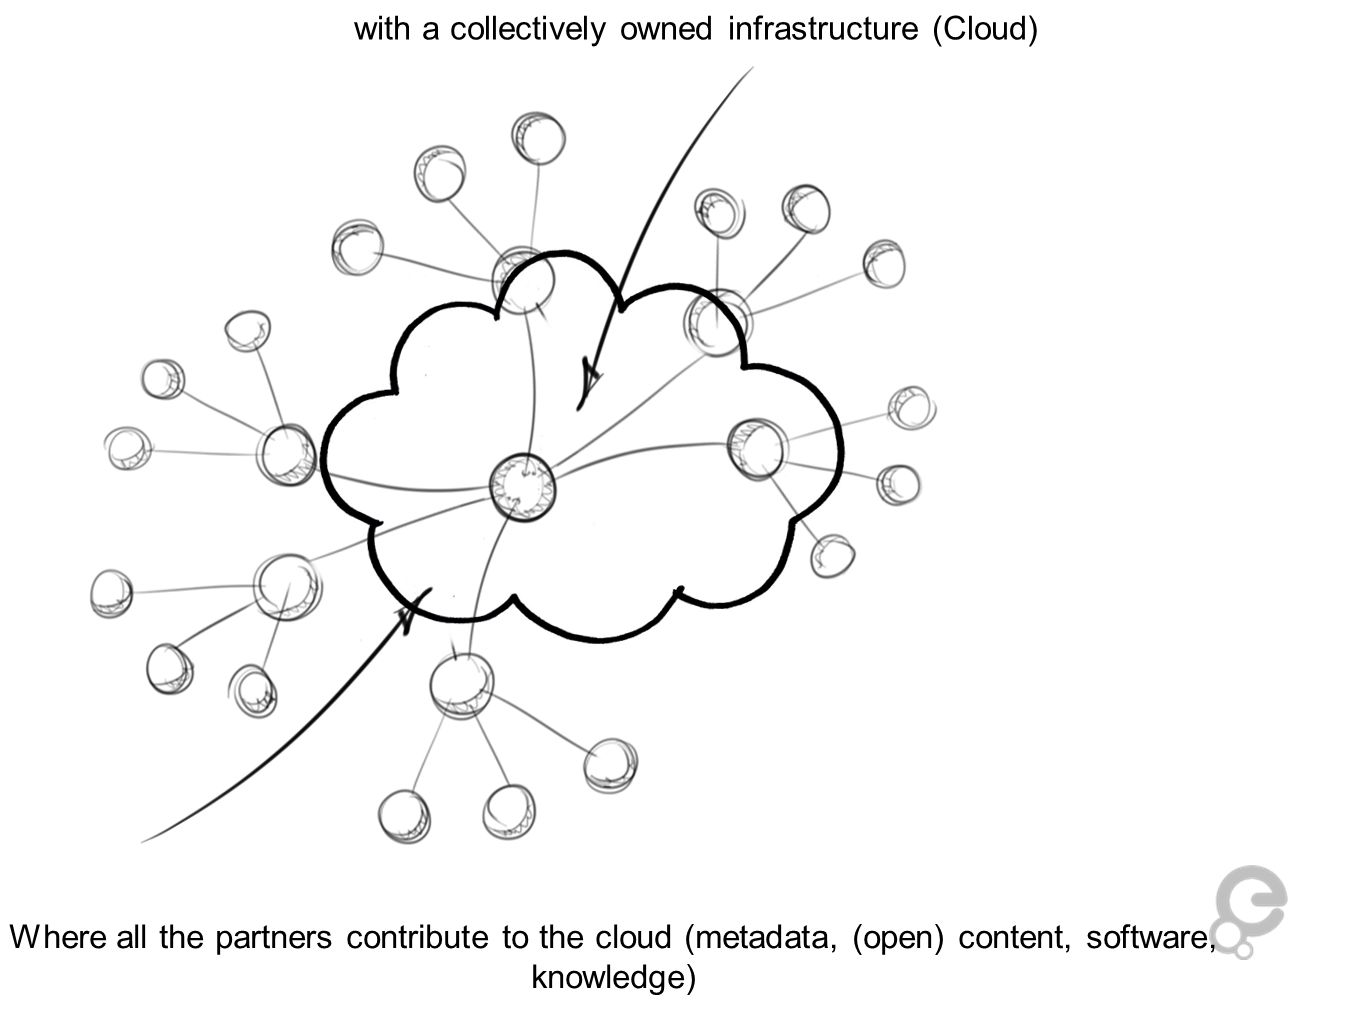 Where all the partners contribute to the cloud (metadata, (open) content, software, knowledge) with a collectively owned infrastructure (Cloud)